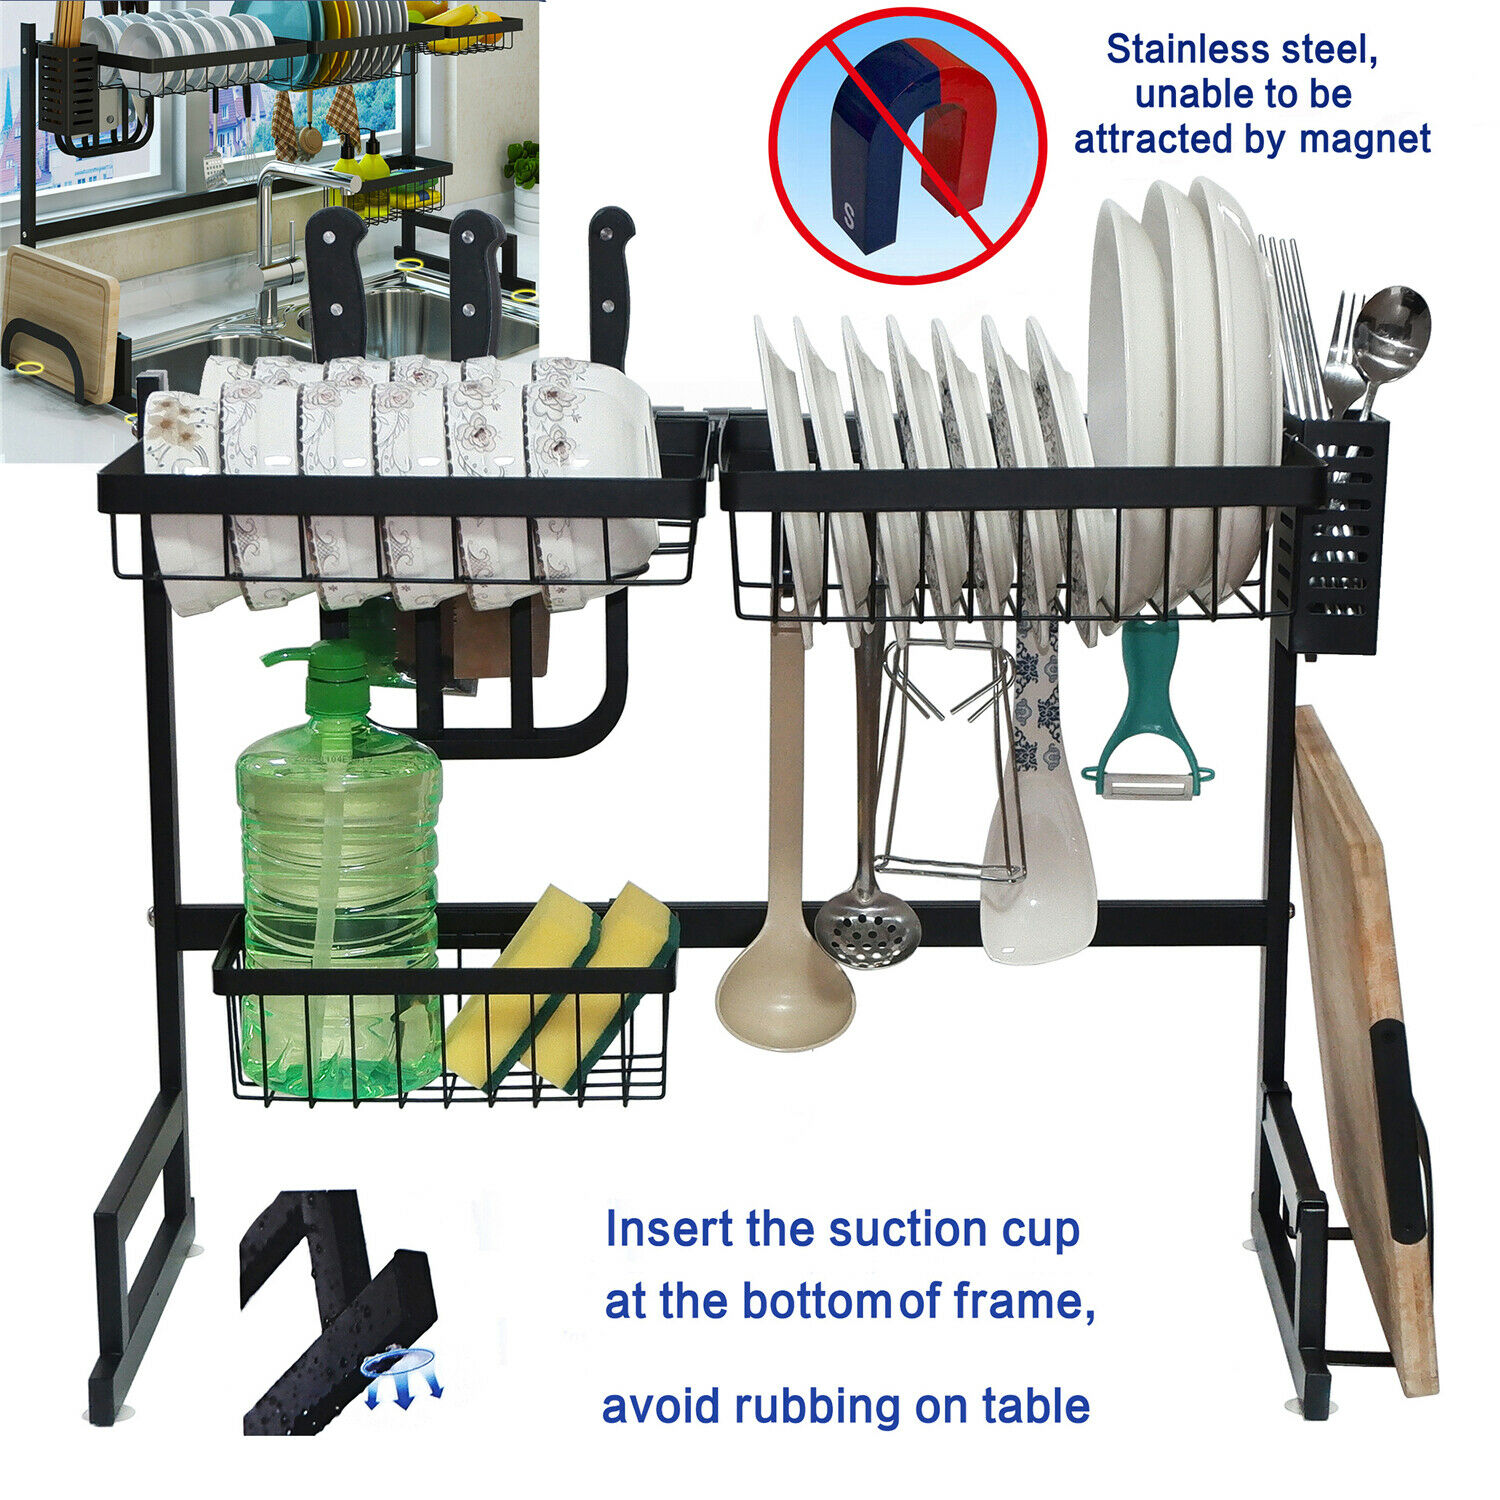 Over Sink Dish Drying Rack 2-Tier Stainless Steel Cutlery Drainer Kitchen Shelf